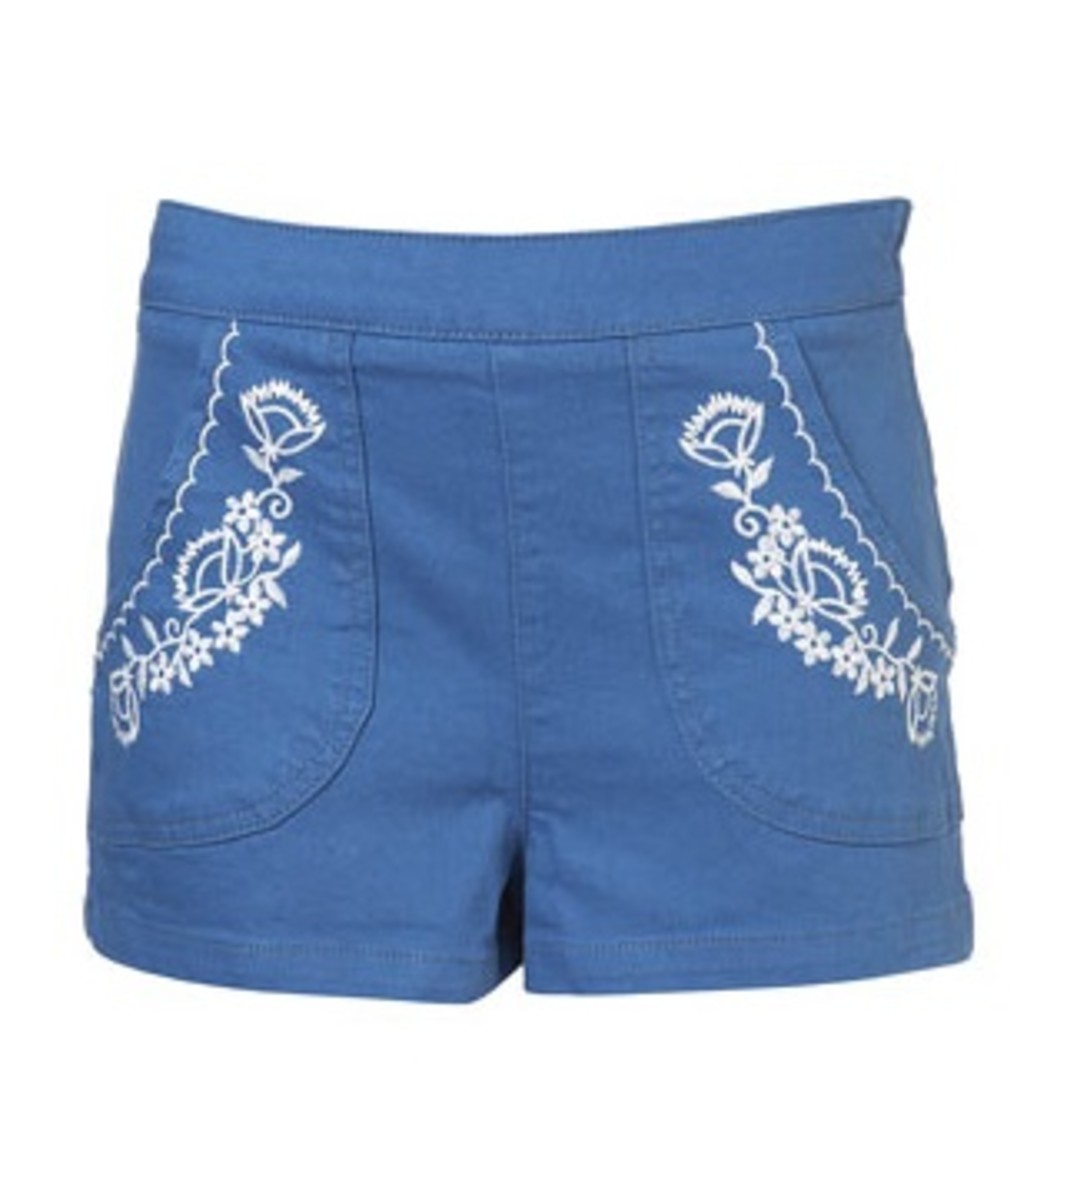 A high-waisted walking short beautified with south of the border style embroidery.